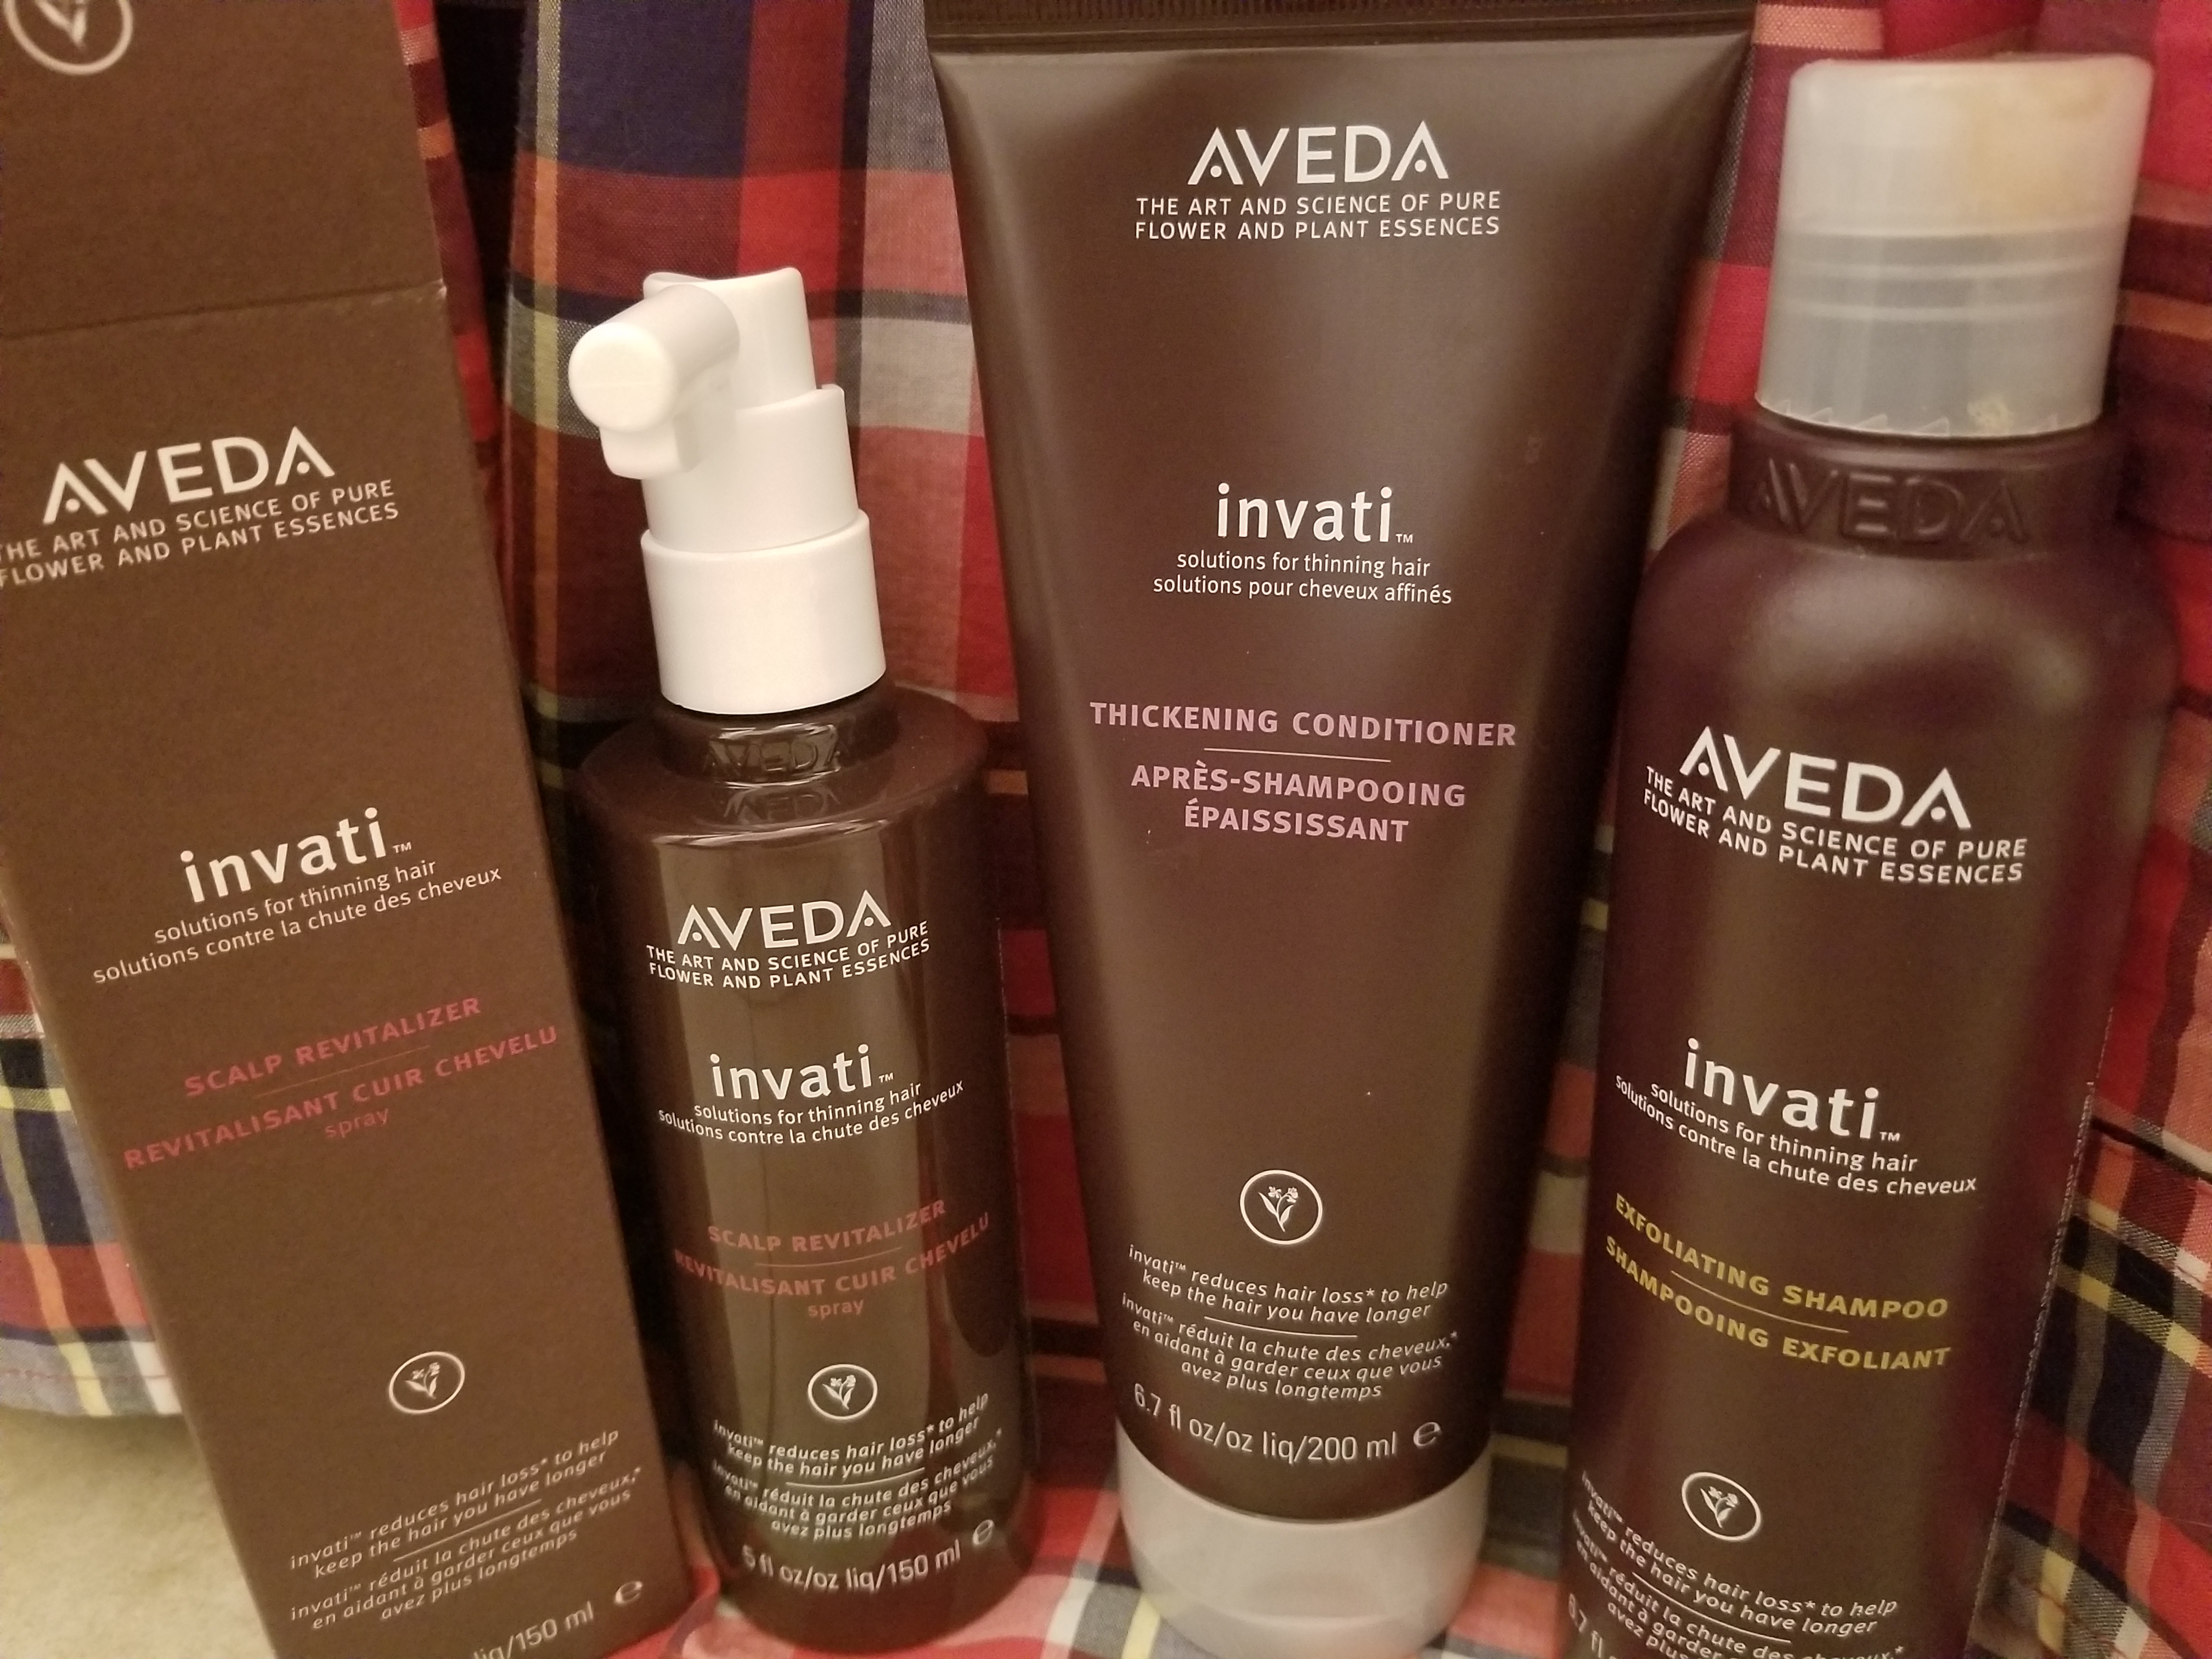 Hair care, Aveda, hair growth, shampoo, conditioner